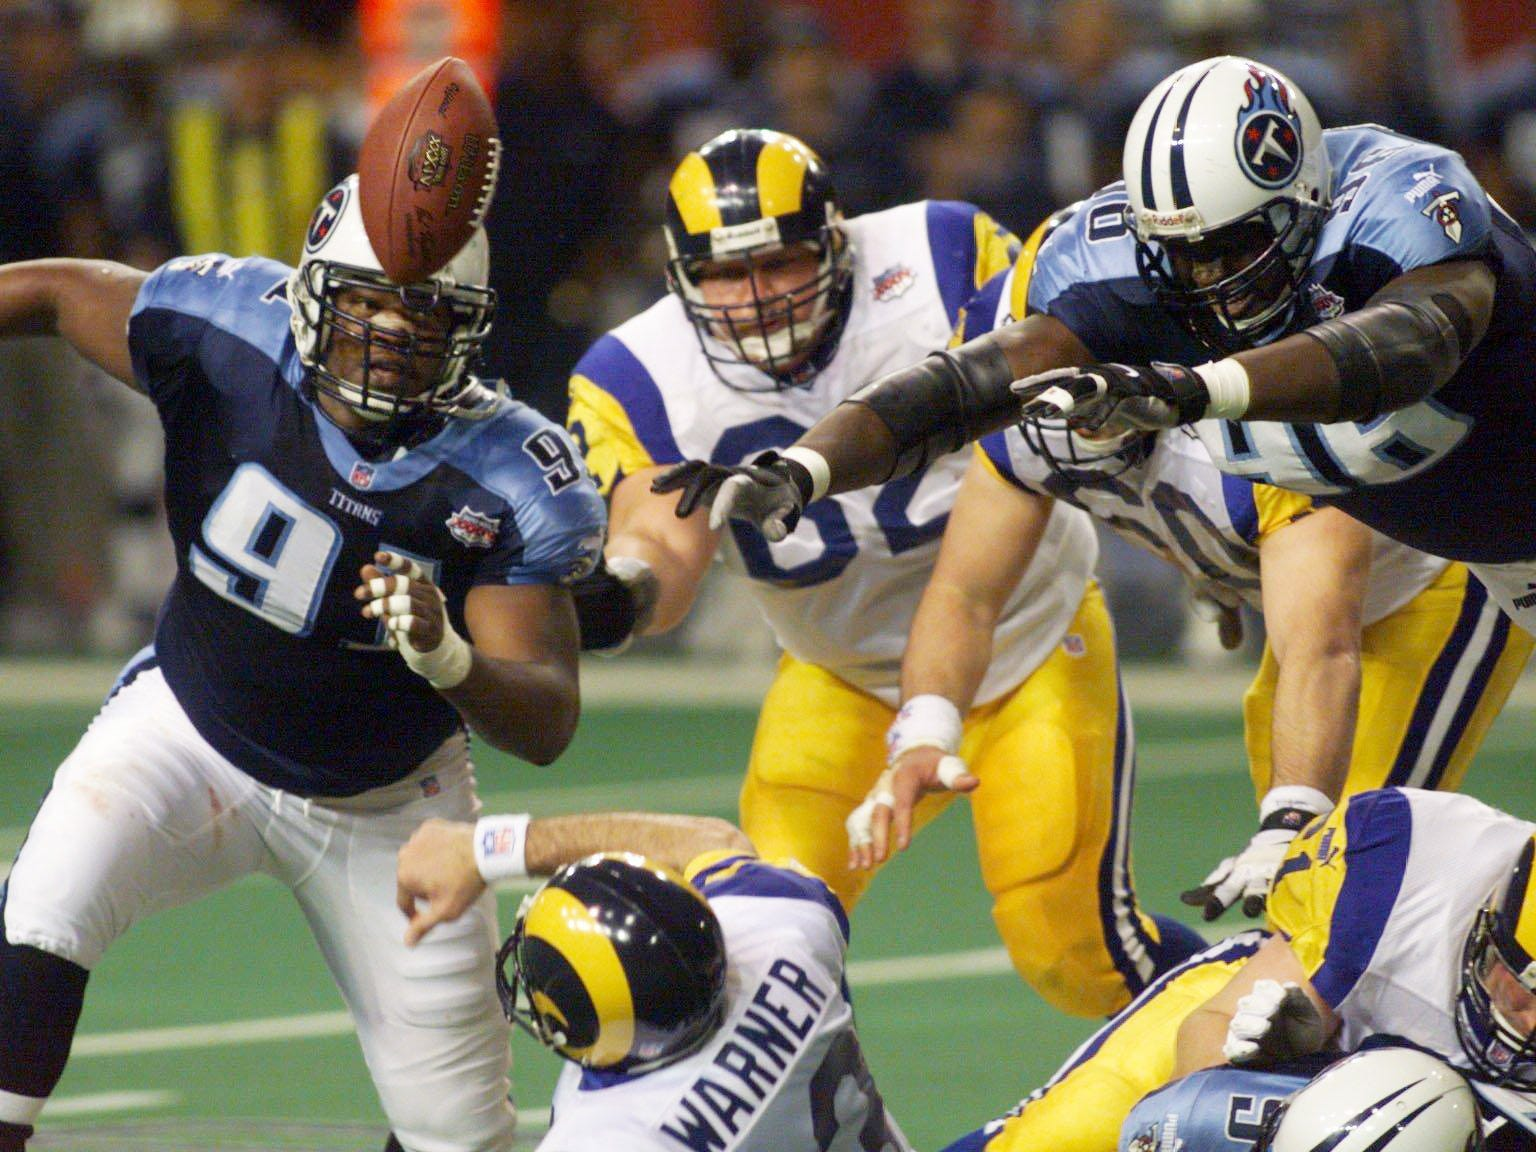 Tennessee Titans defenders Josh Evans (91), and Mike Jones (96), chase the ball as it popped loose from St. Louis Rams quarterback Kurt Warner (13), during second quarter action during Super Bowl XXXIV Jan. 30, 2000. Warner was ruled down on the play.